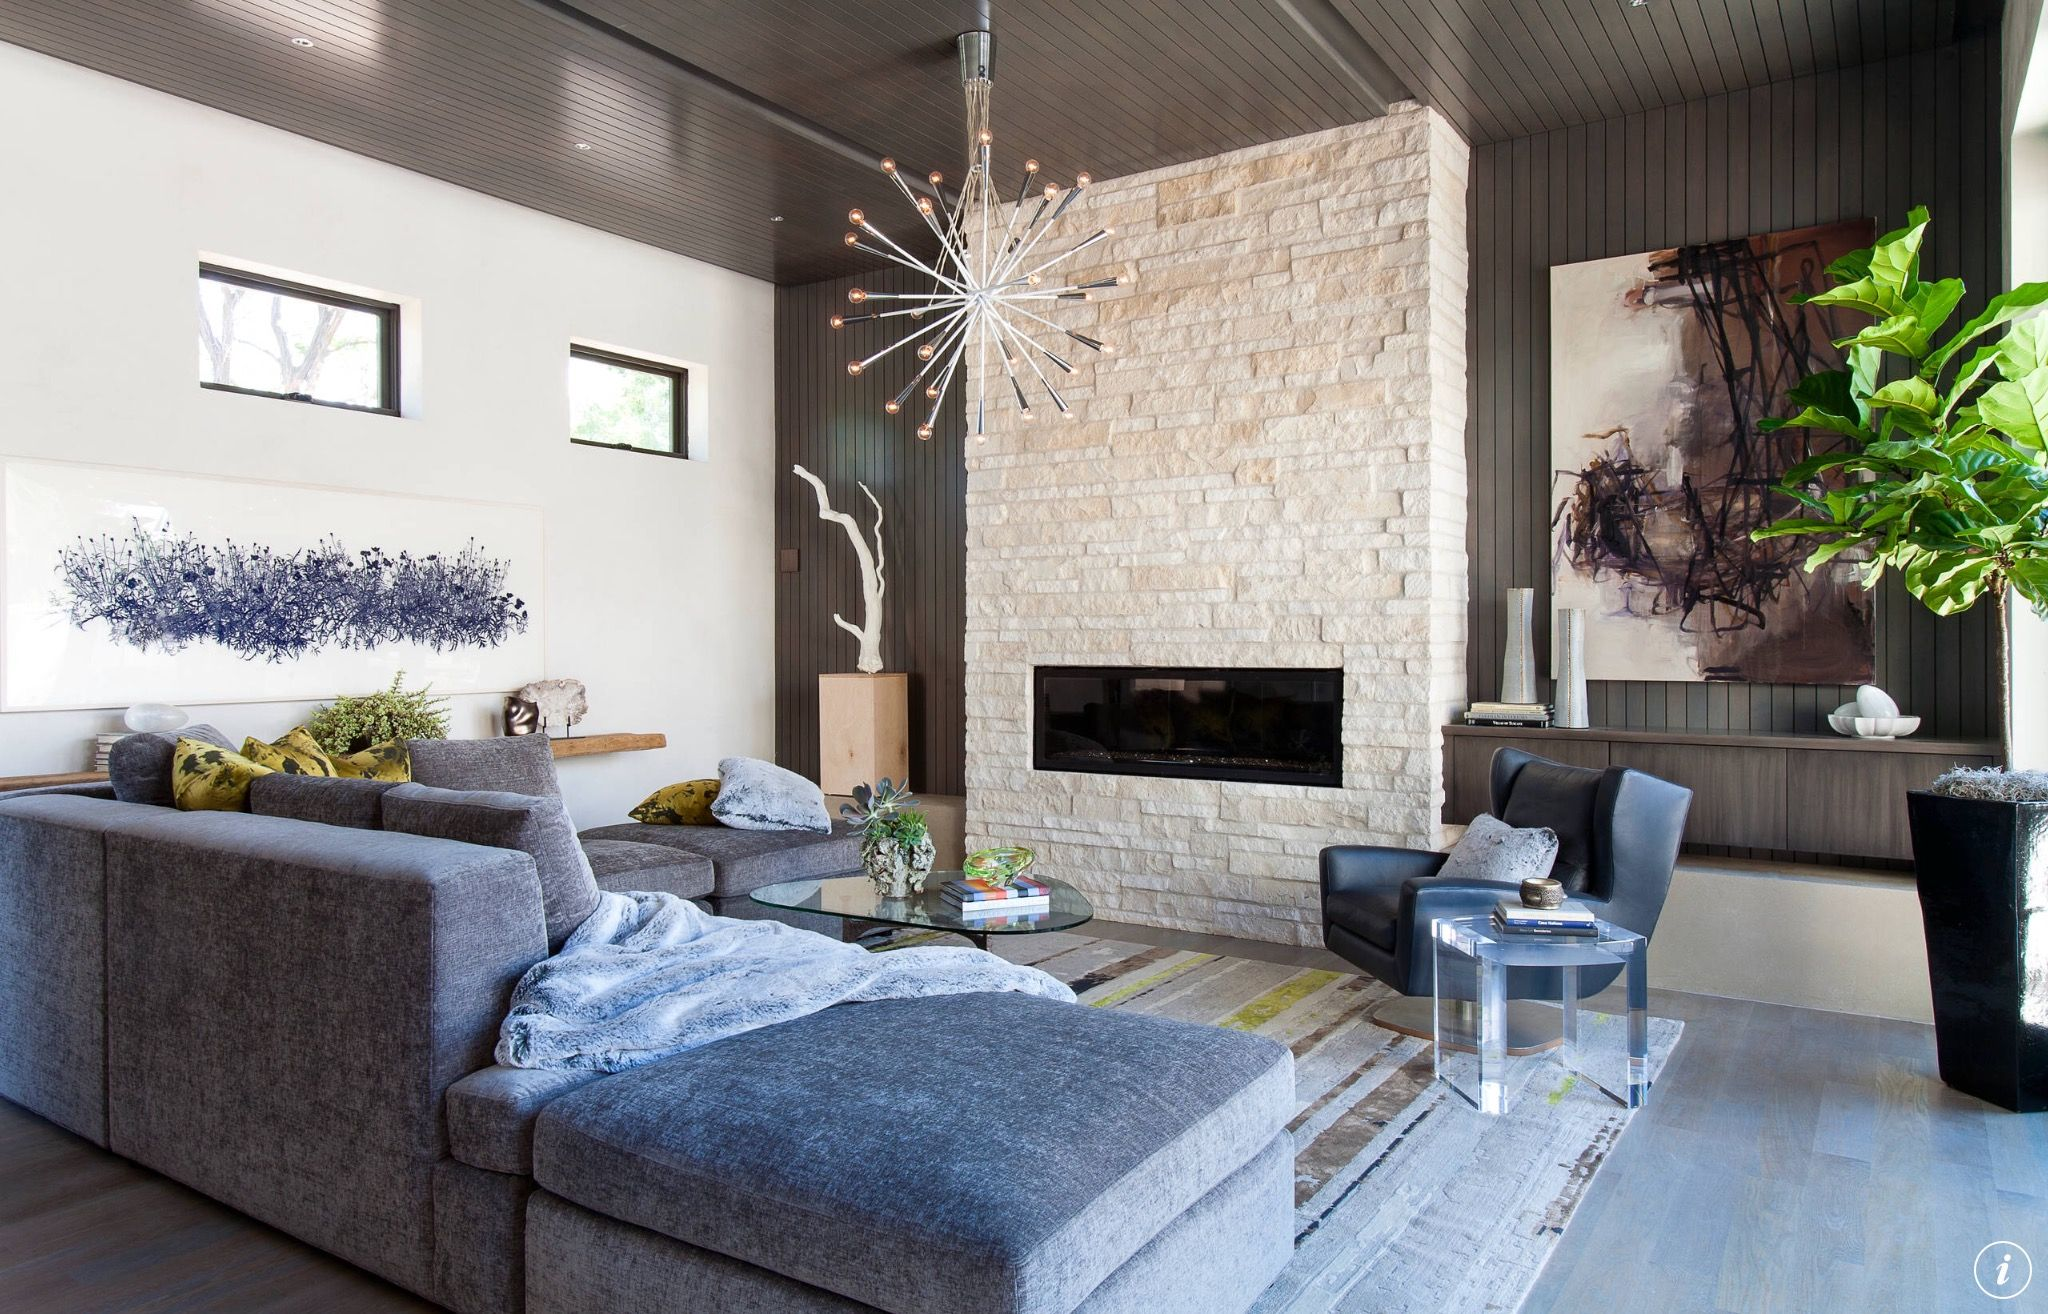 Pin by A on Interior Design | Living room modern, Mid ...